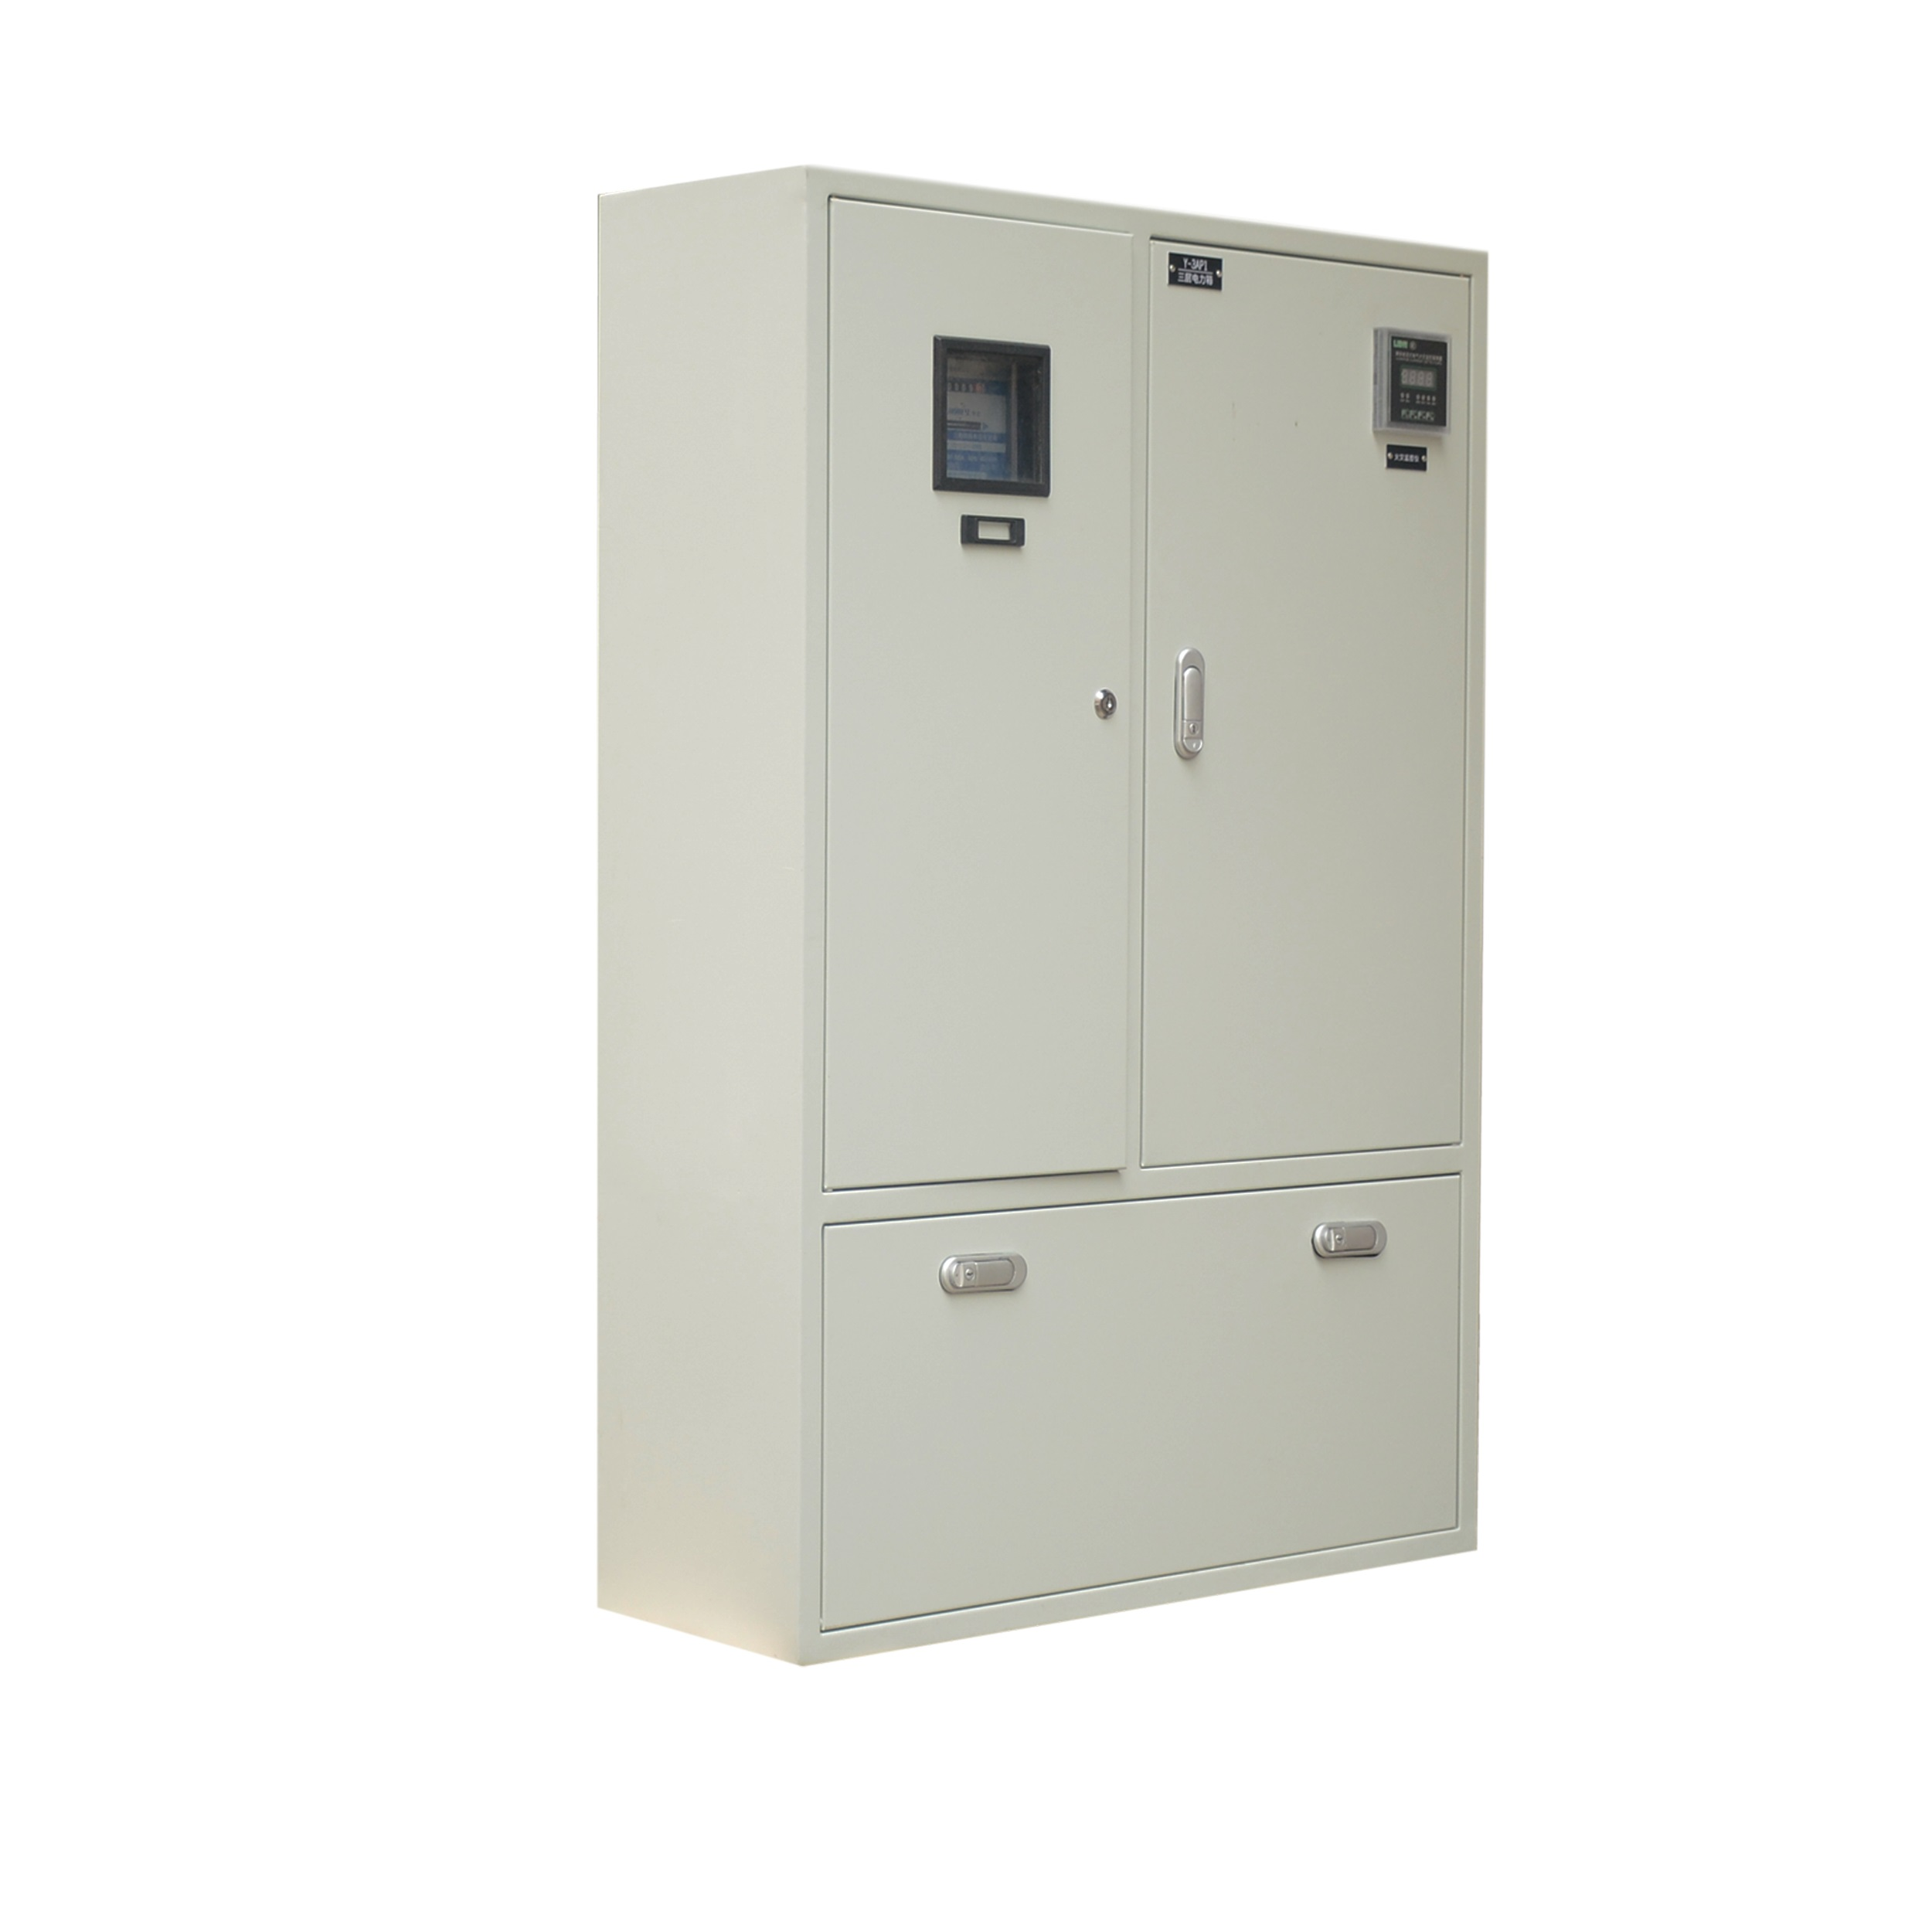 Central air conditionary fan frequency control cabinet